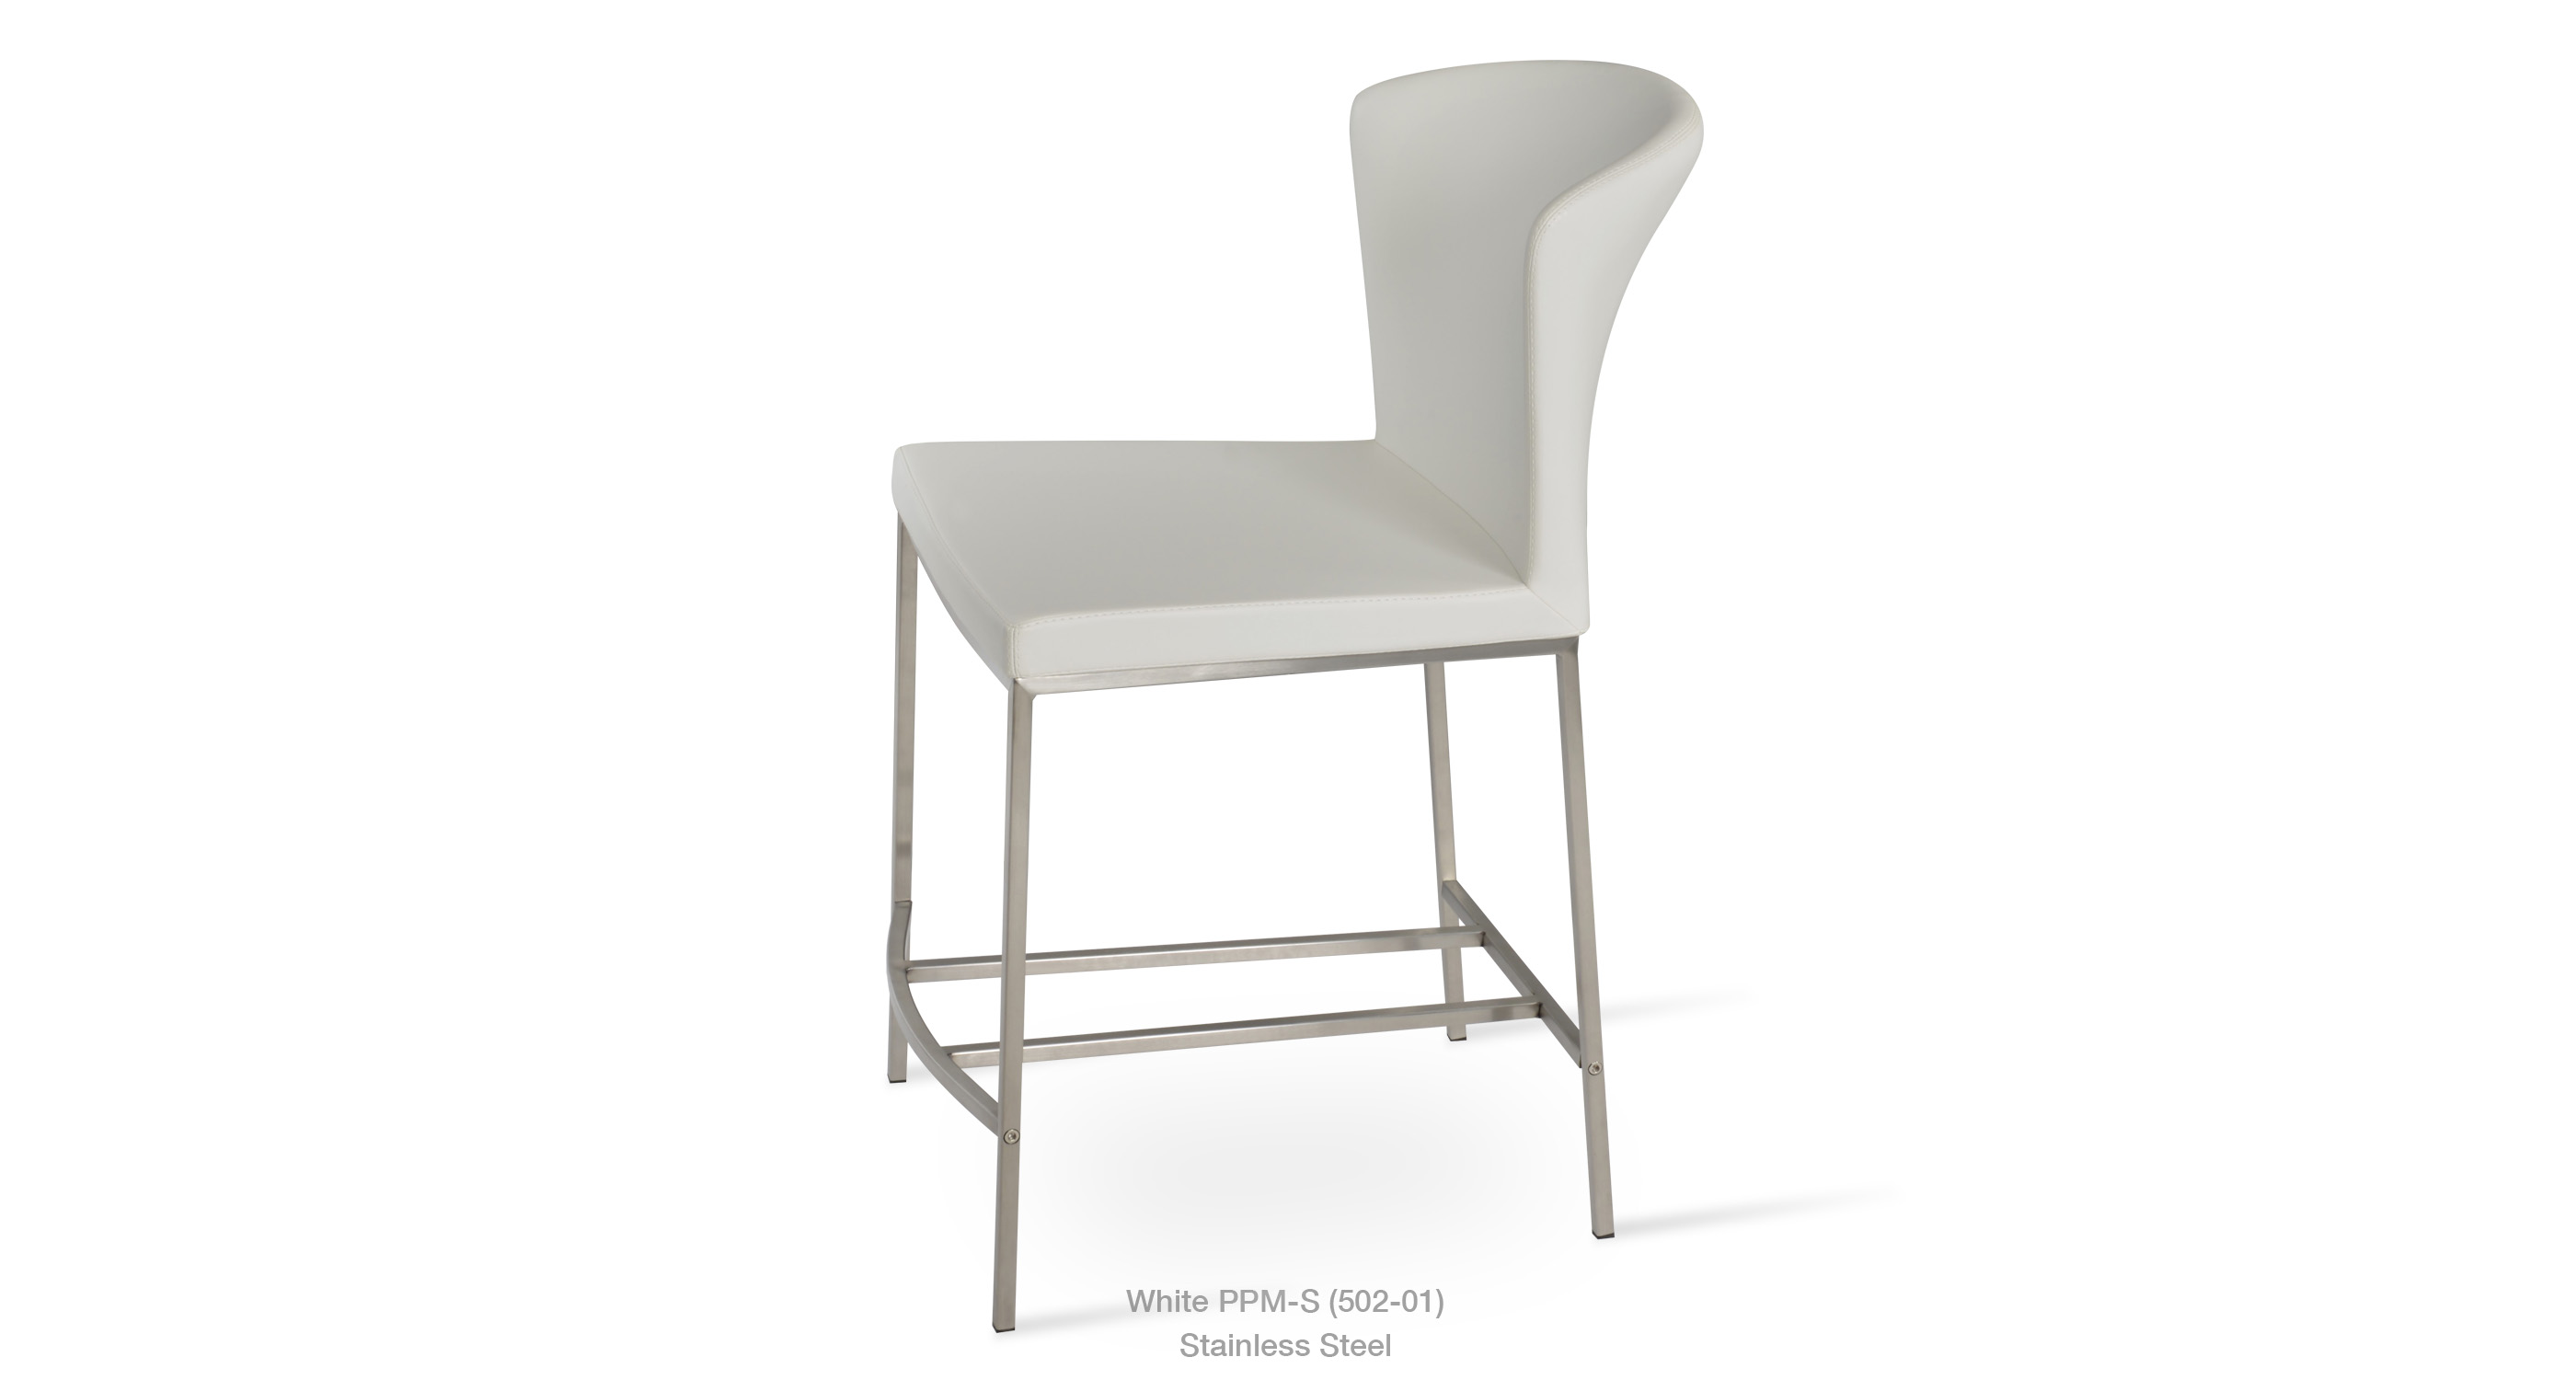 11 8 2020 Capri Metal White Ppm